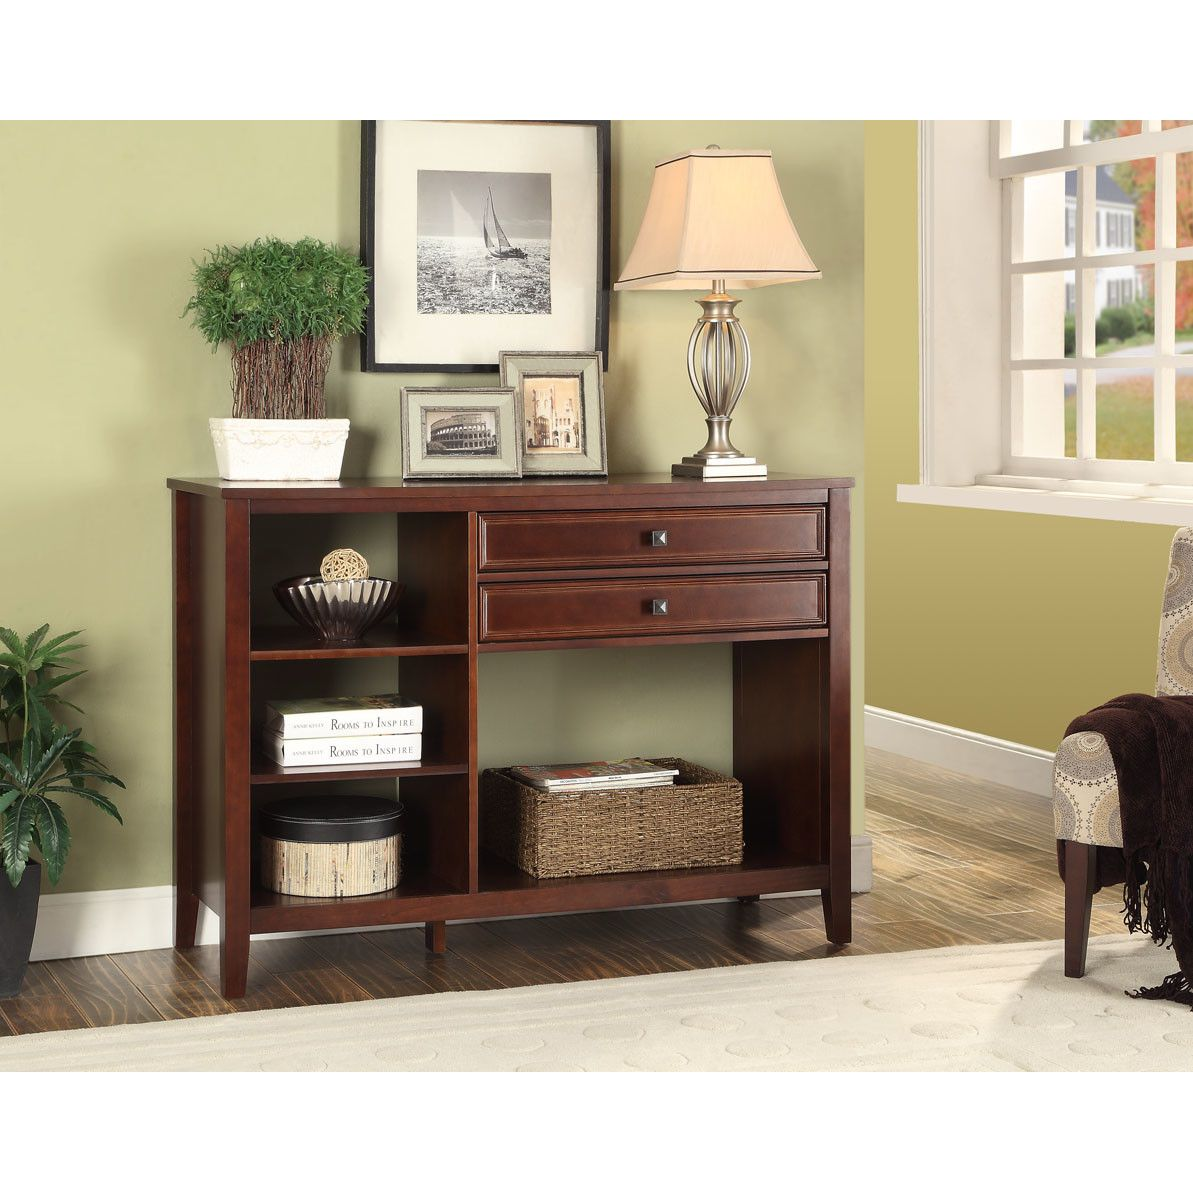 Alcott hill nelsonville console table neck and shoulder tables rectangle brown traditional cherry manufactured wood frame with pine wood veneers metal nelsonville console table with drawers funky console table geotapseo Gallery